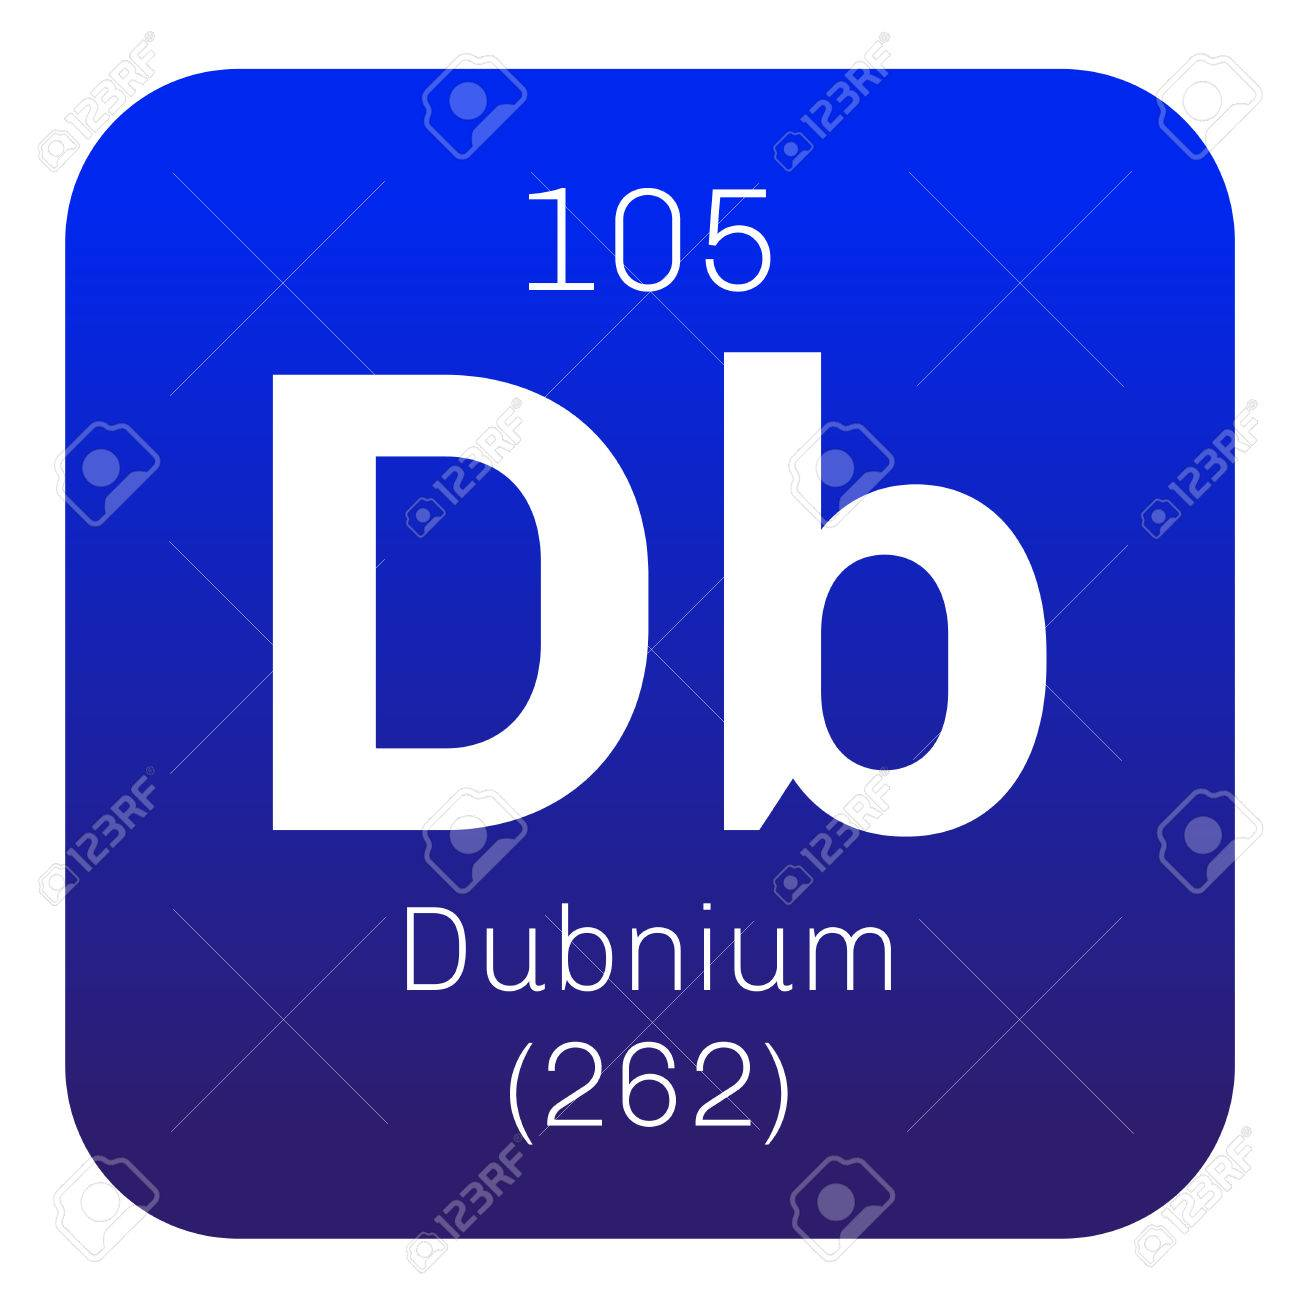 Dubnium chemical element radioactive synthetic element colored dubnium chemical element radioactive synthetic element colored icon with atomic number and atomic weight urtaz